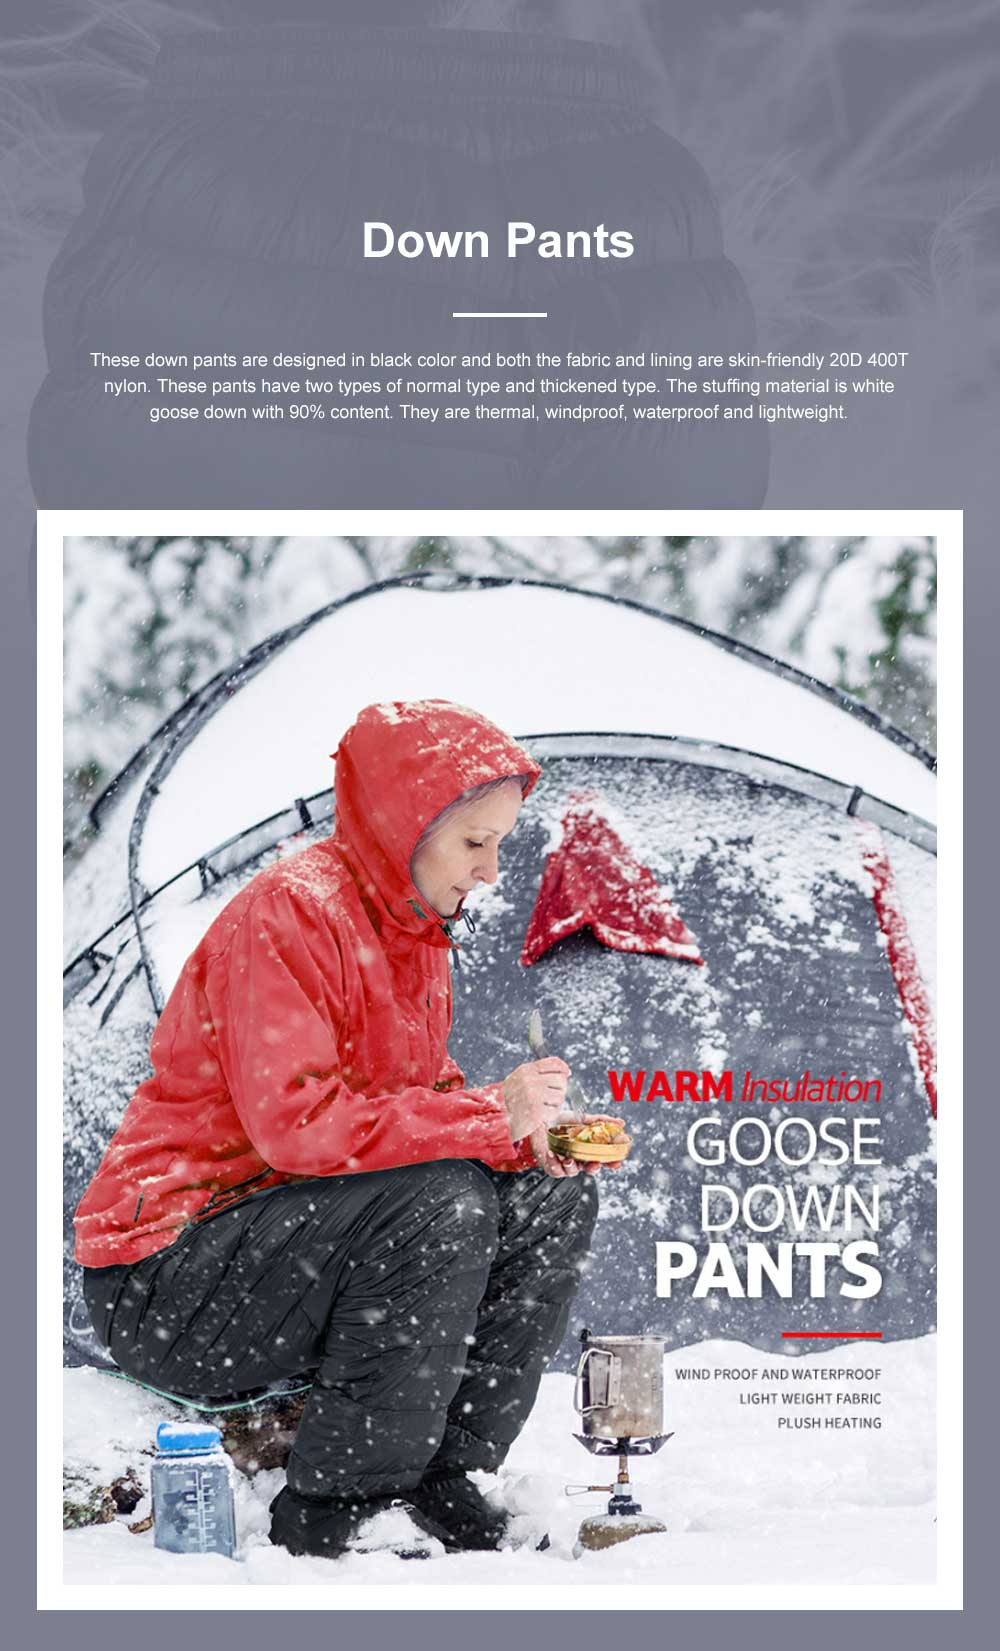 Naturehike White Goose Down Pants for Winter Sports Waterproof Thermal Winter Trousers Windproof Down Wadded Trousers Down Pants 0